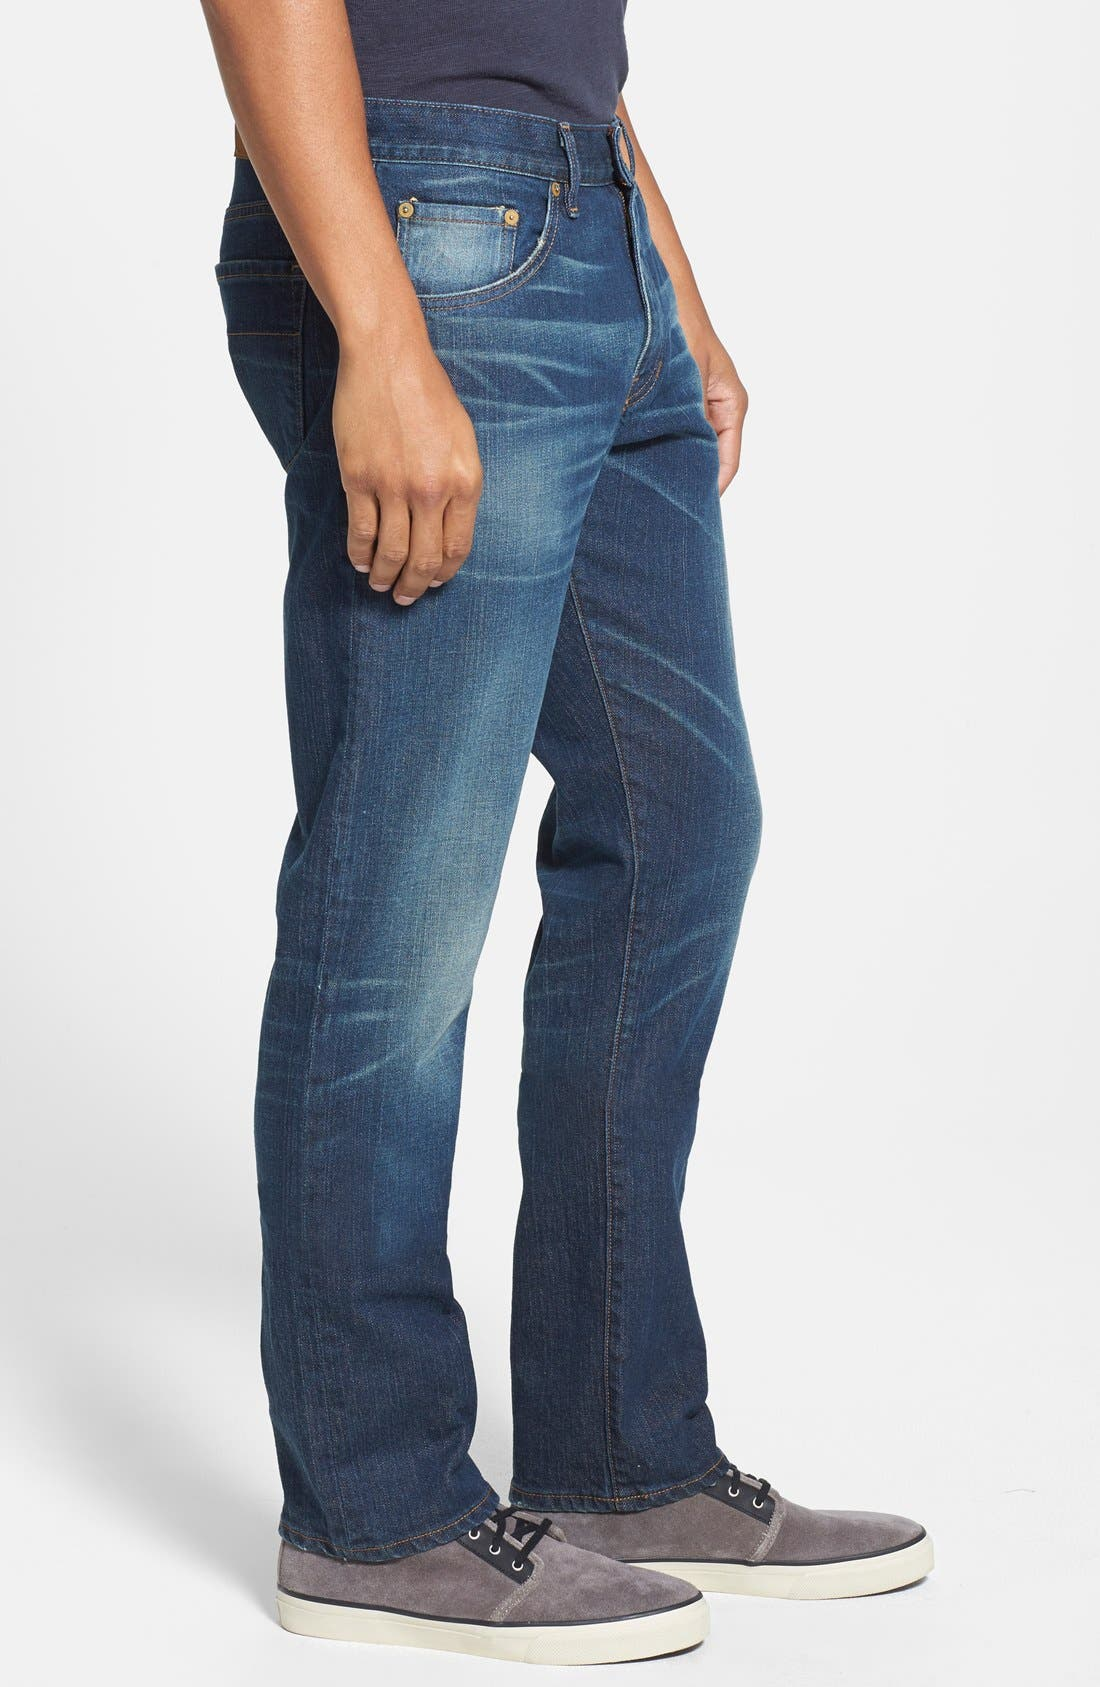 'Jones' Slim Straight Fit Jeans,                             Alternate thumbnail 2, color,                             CAMP